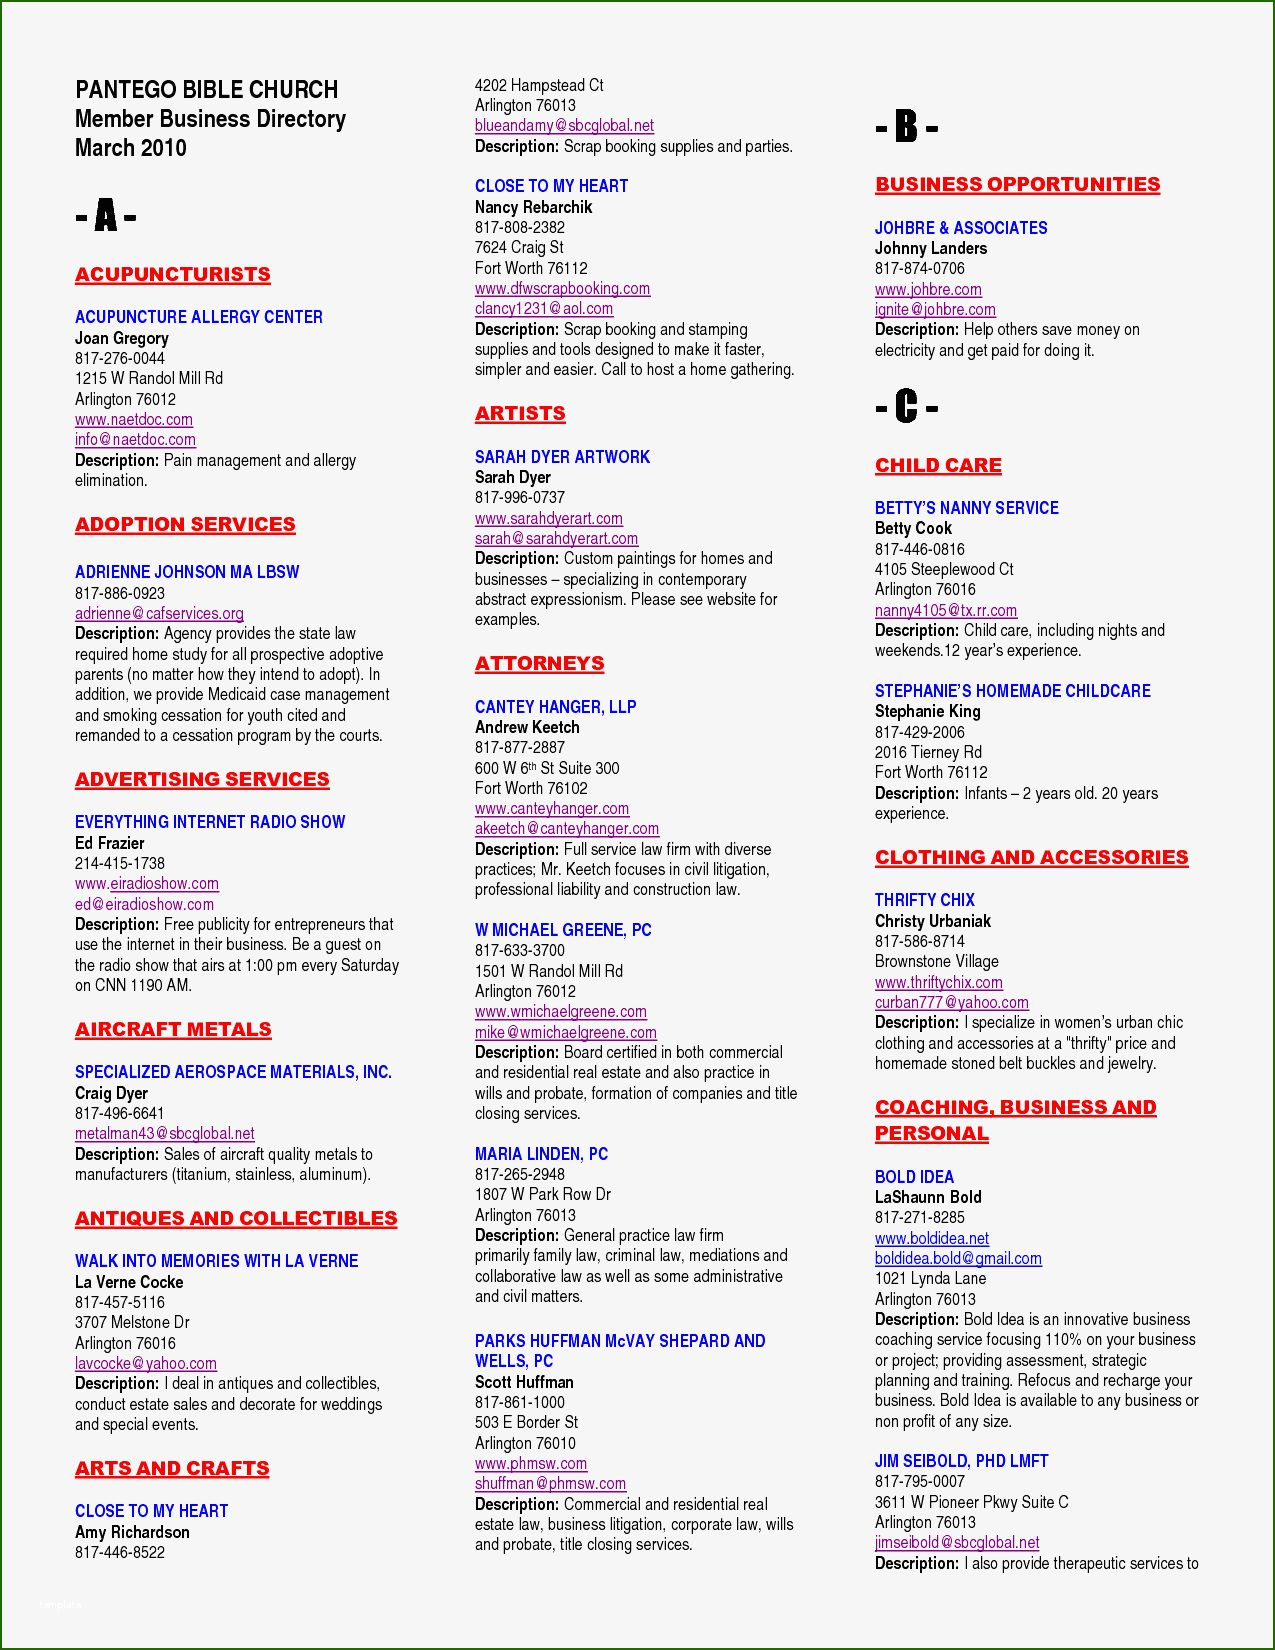 18 Beautiful Free Church Directory Template 2020 Class Schedule Template Jobs For Freshers Templates Free church photo directory template